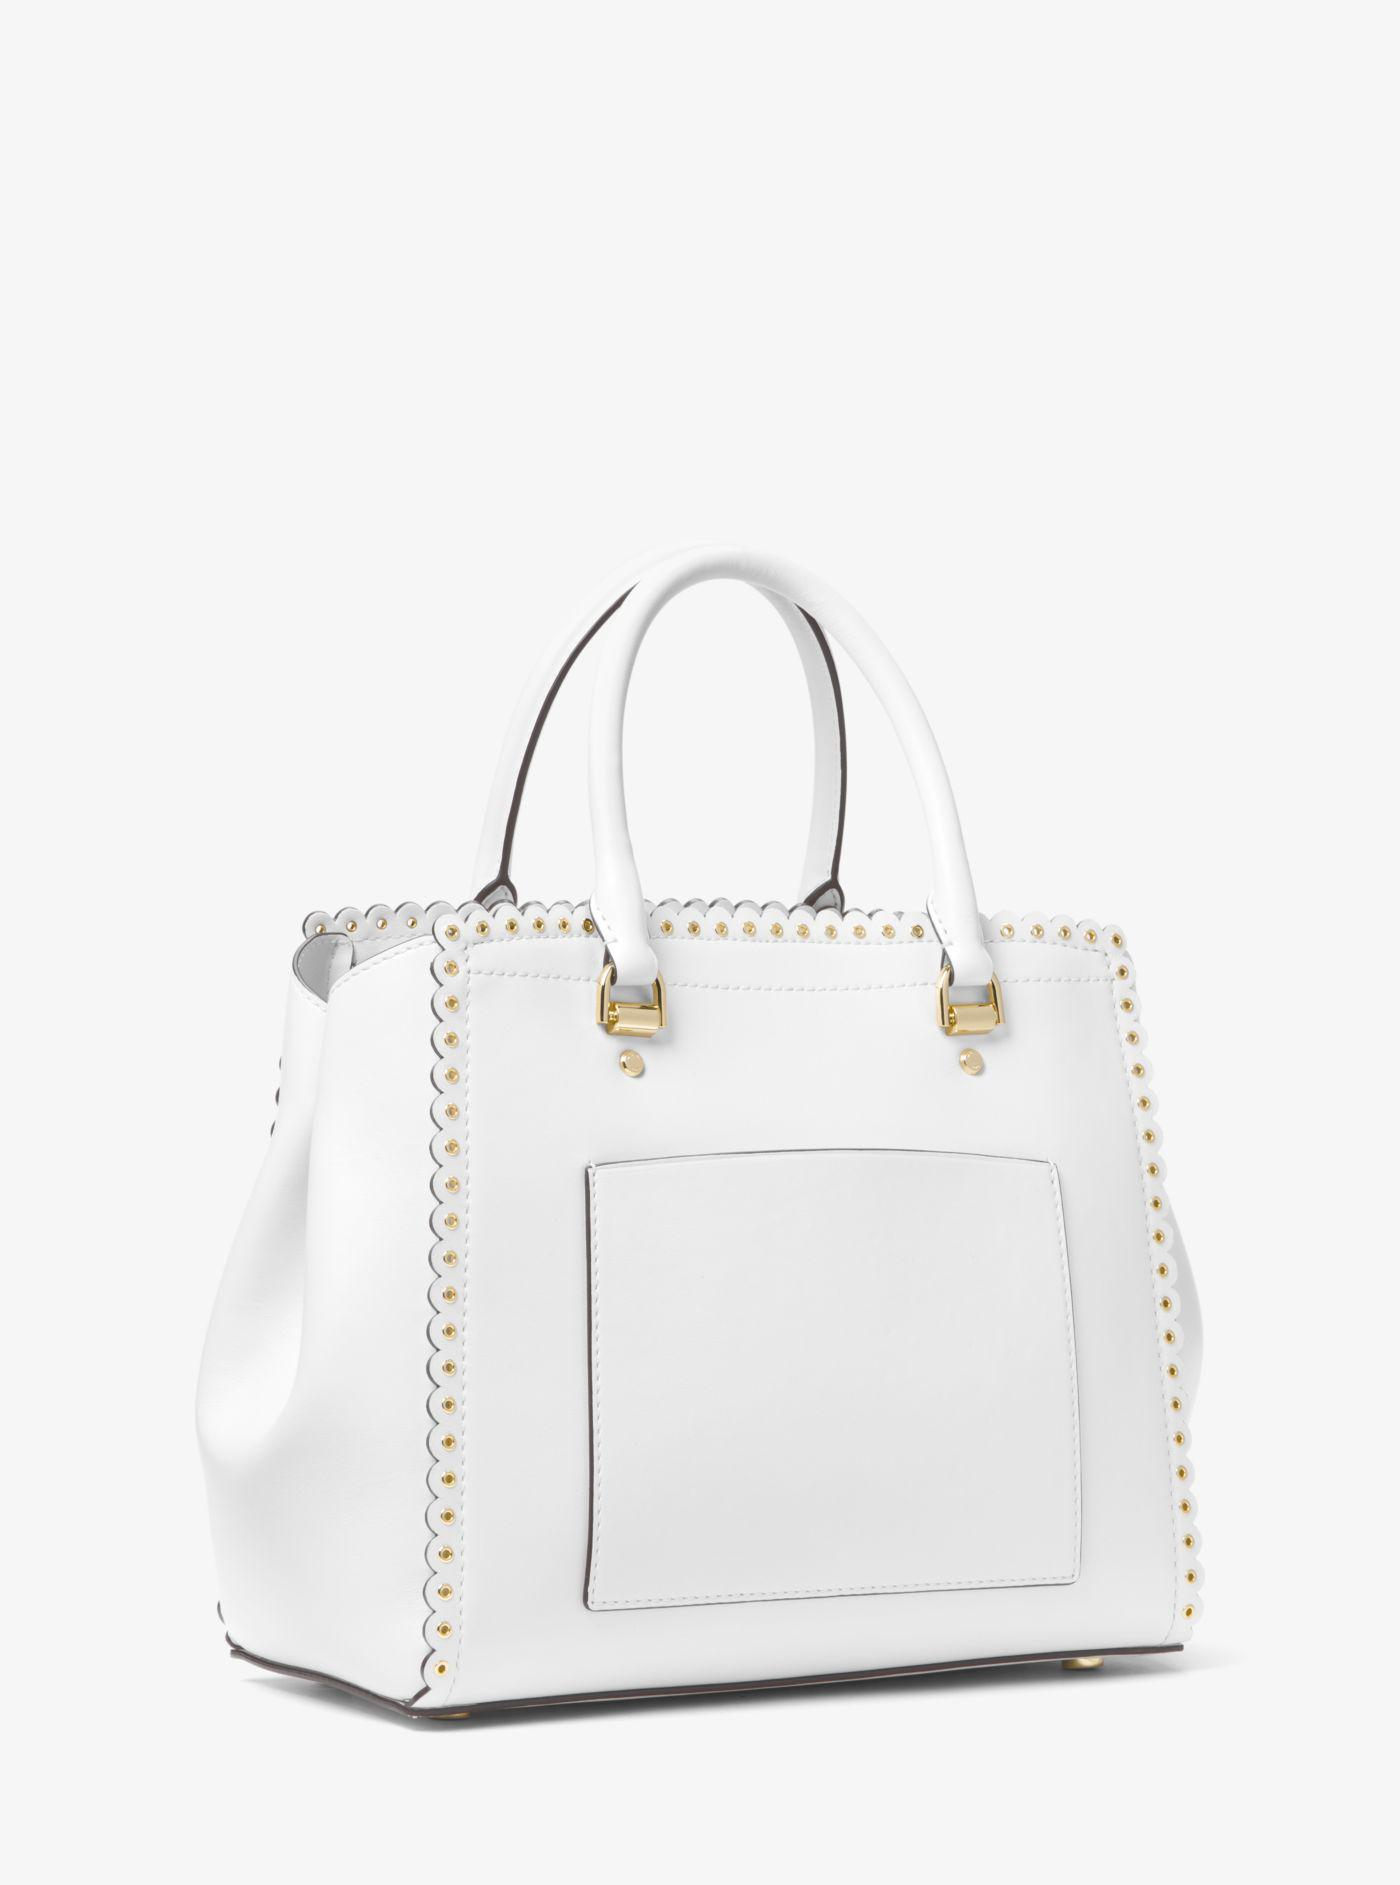 19e1fc0f74dc2 Michael Kors Benning Large Scalloped Leather Satchel in White - Lyst